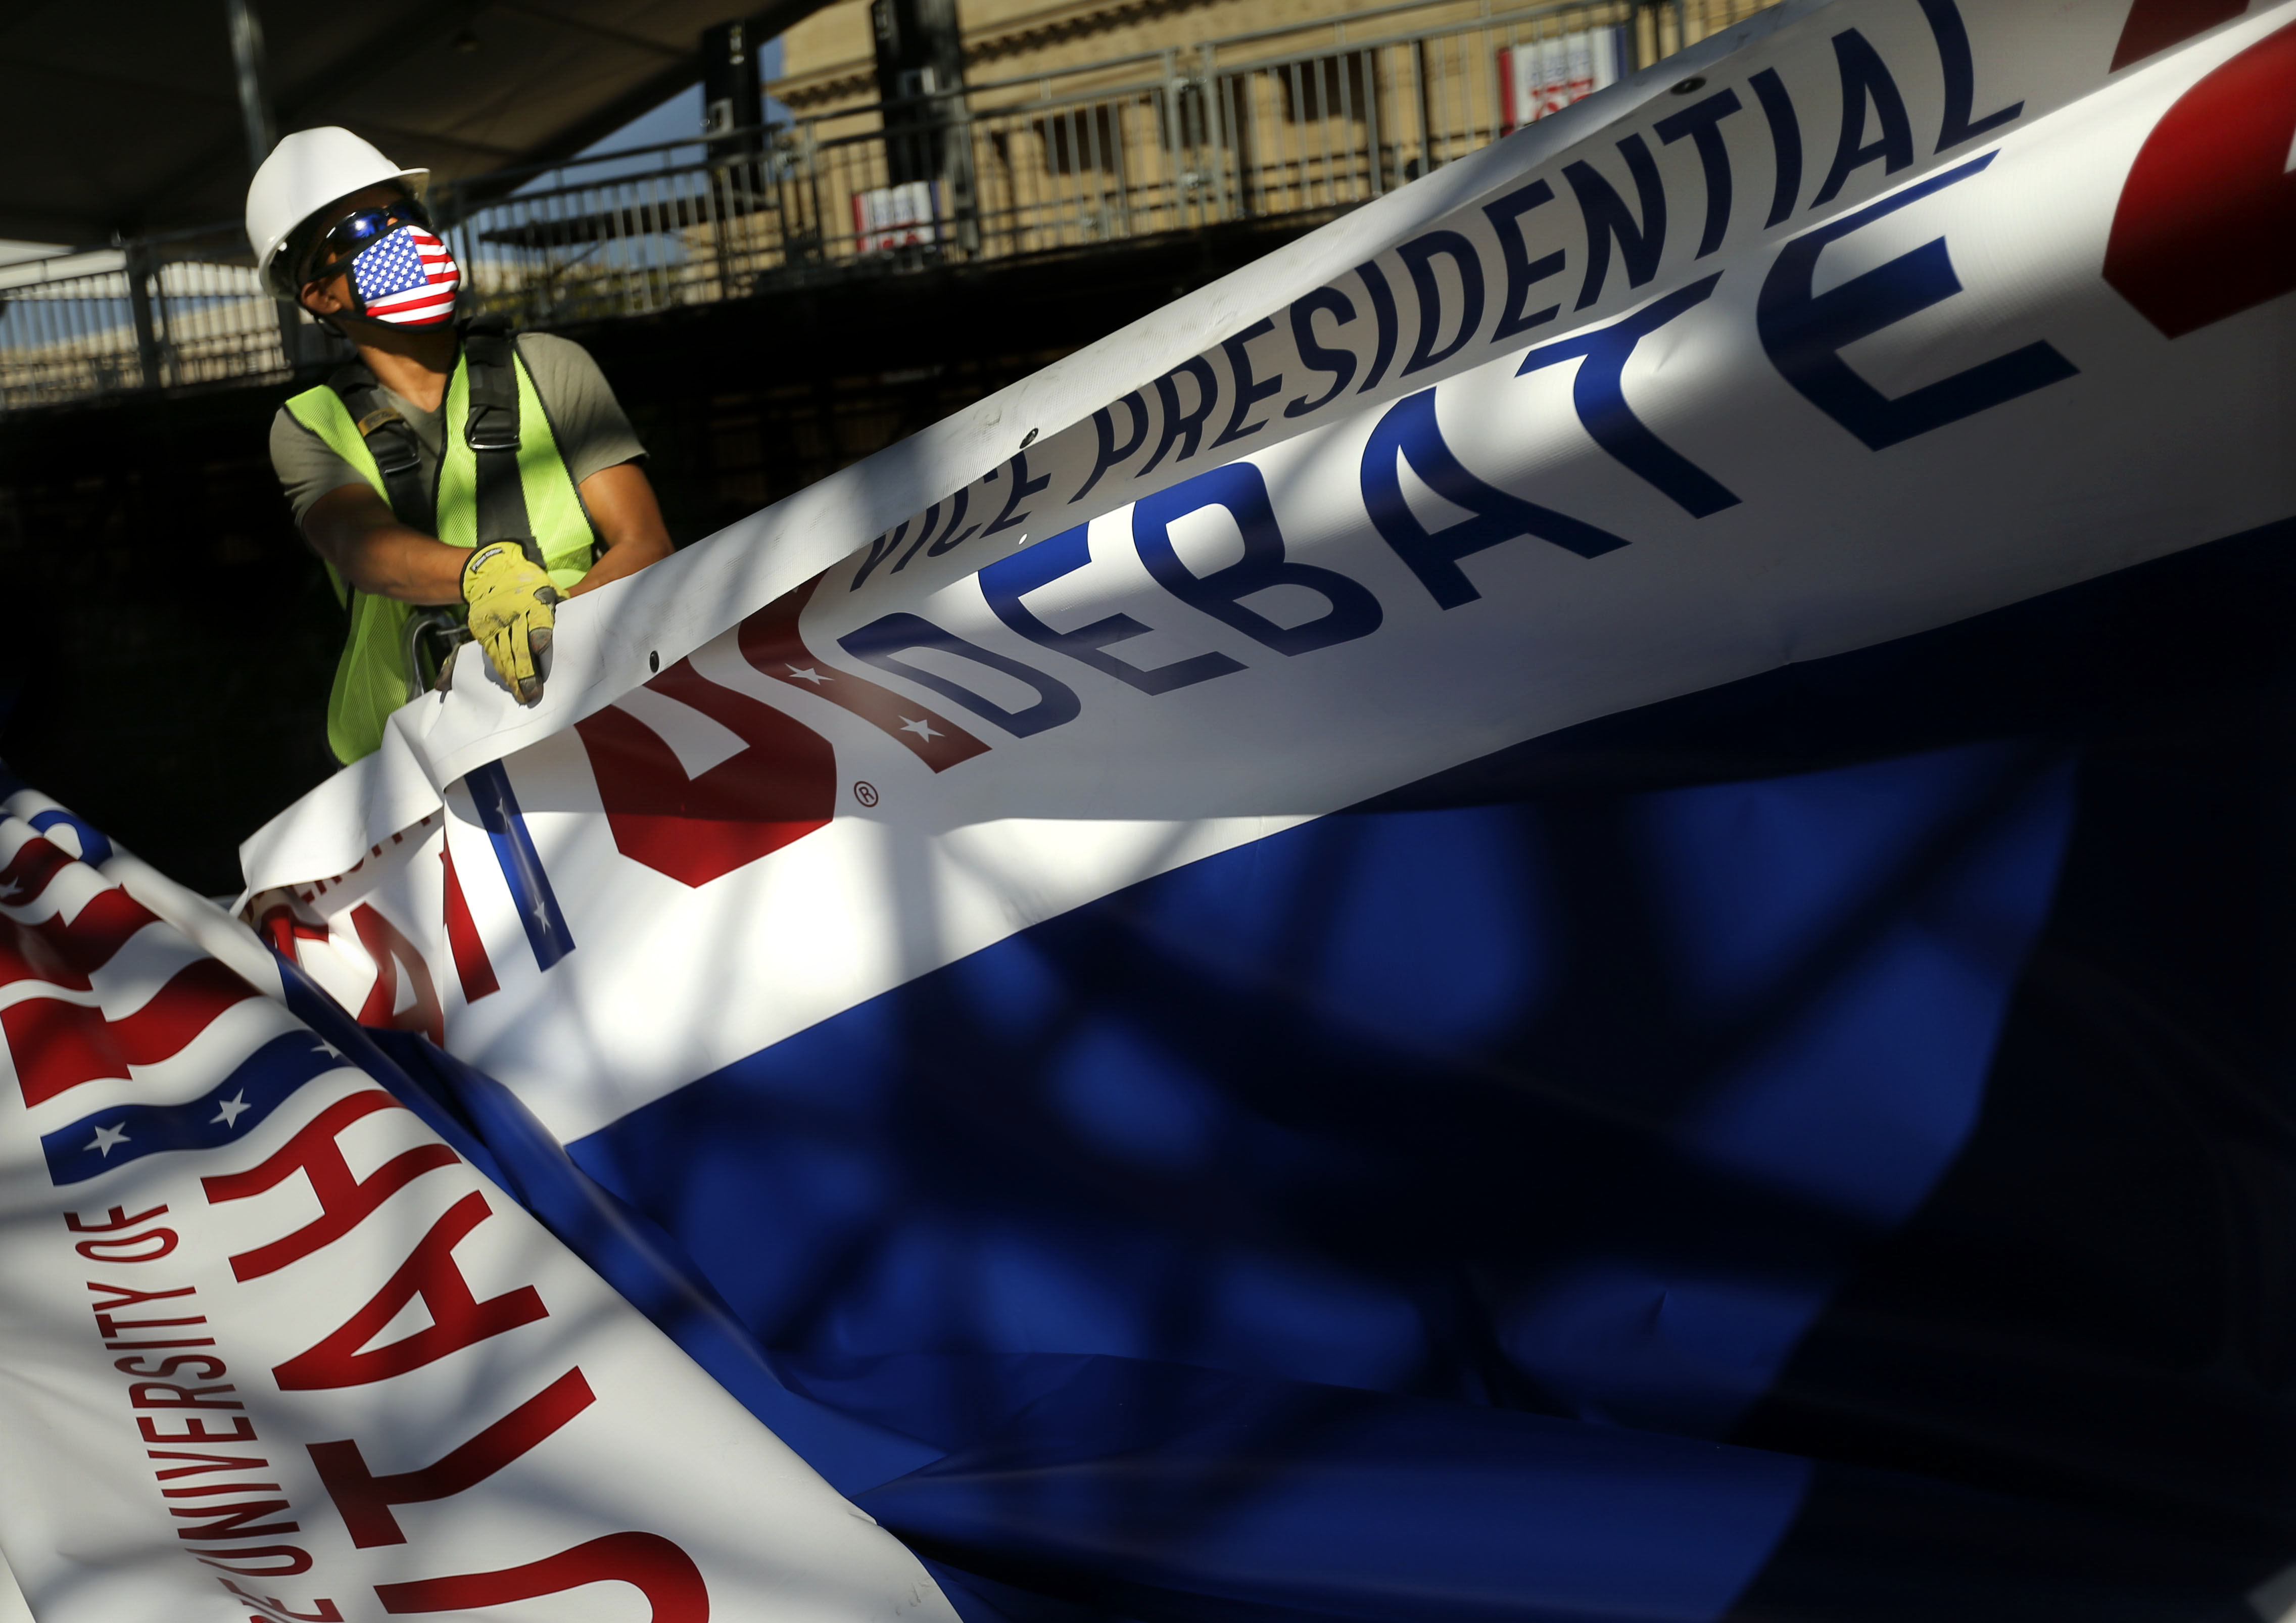 Piero Mucha, a member Local 99 of the International Alliance of Theatrical Stage Employees, removes signage at the University of Utah in Salt Lake City on Thursday, Oct. 8, 2020, the day after the vice presidential debate.